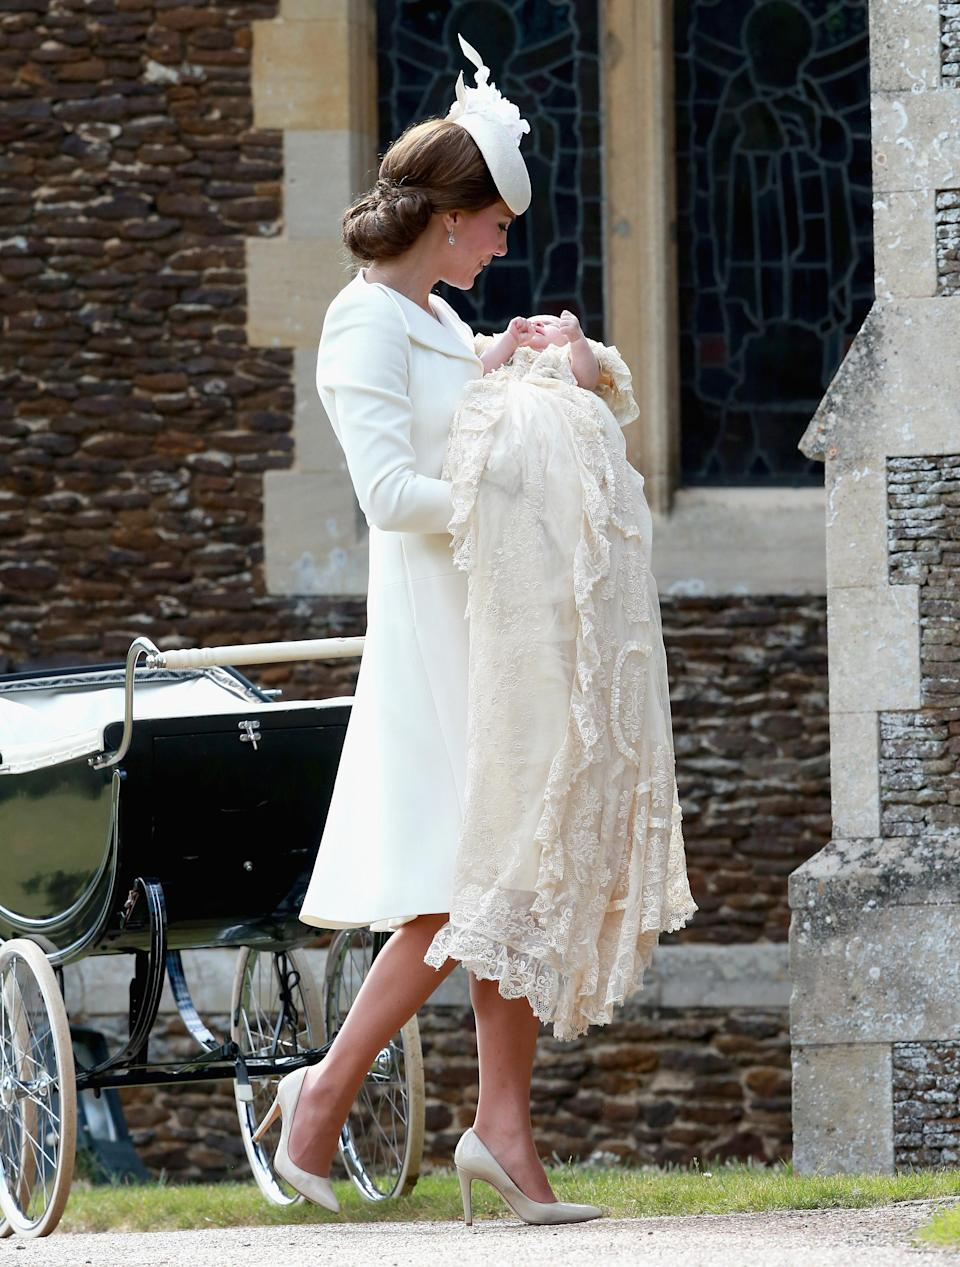 Princess Charlotte also wore the Honiton replica gown for her christening on 5 July 2015 at the Church of St Mary Magdalene [Photo: Getty]